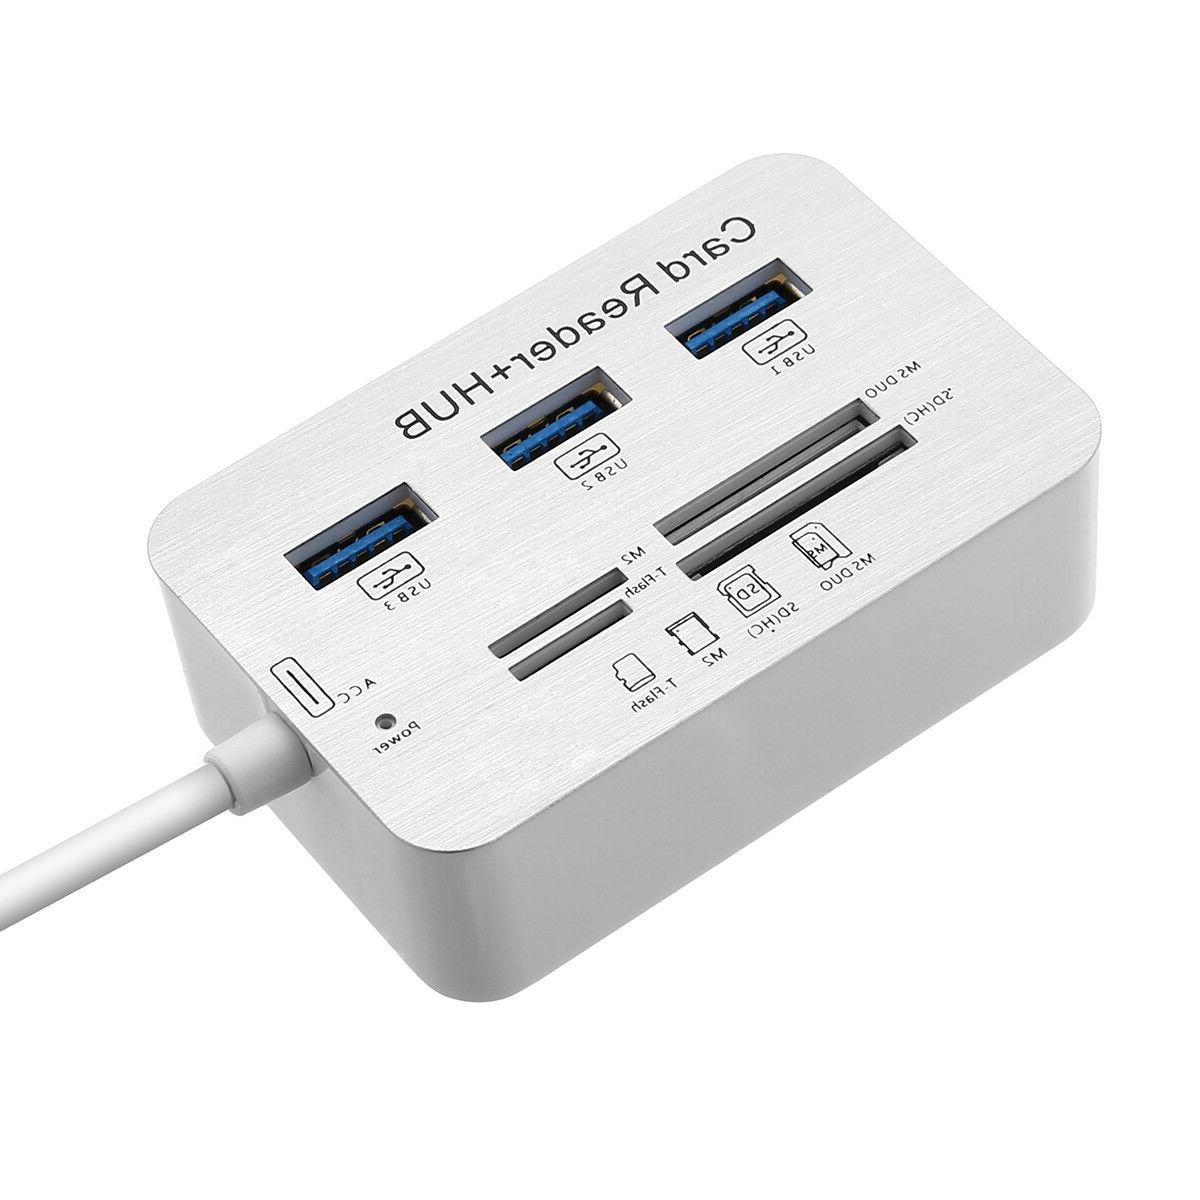 Aluminum USB 3.0 Hub M2 TF Card Reader Adapter